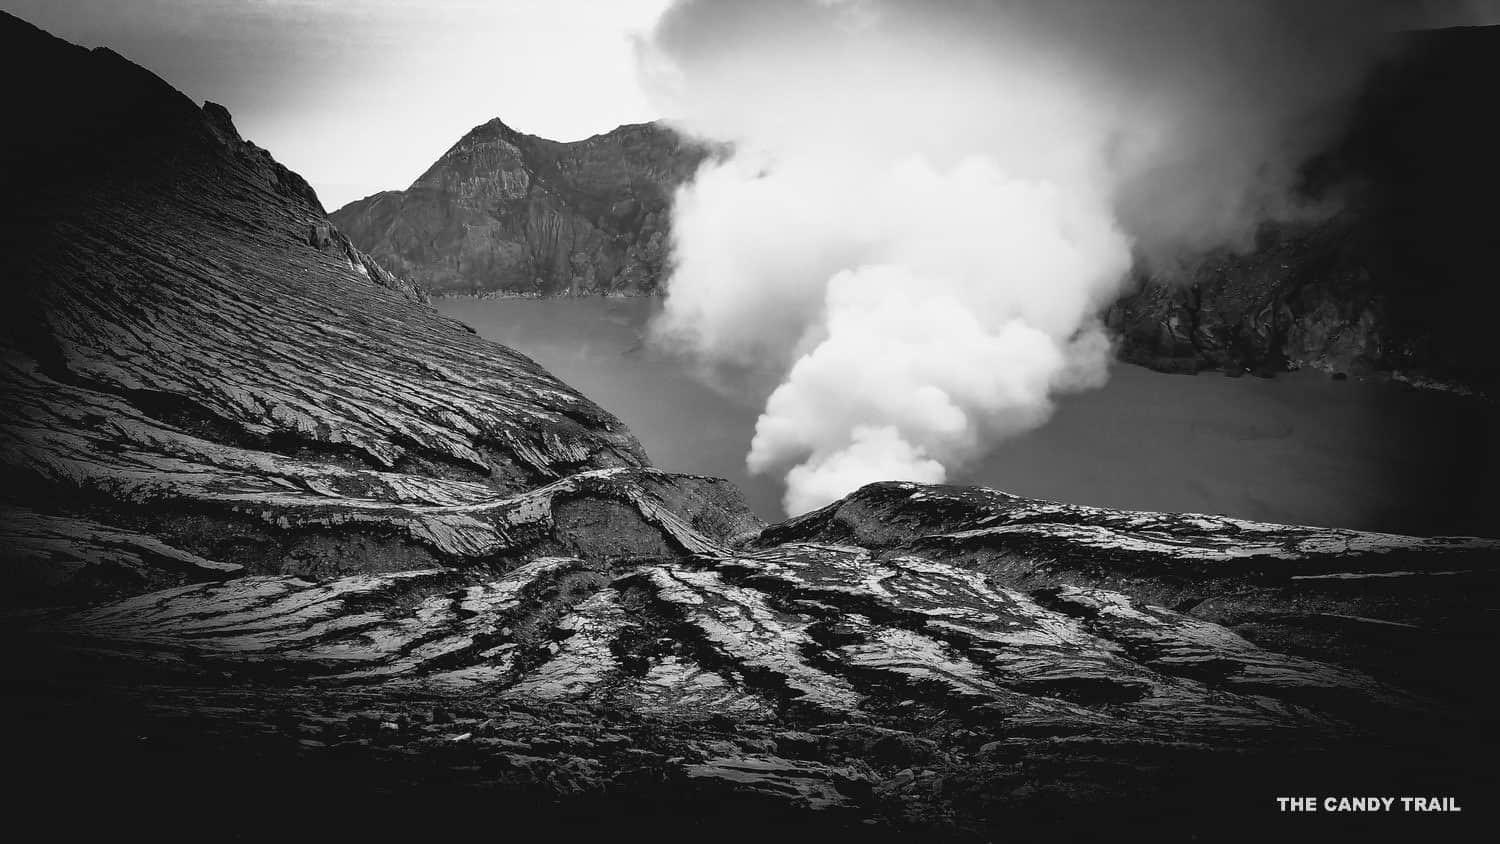 kawah ijen volcano smoking crater indonesia black and white photograph